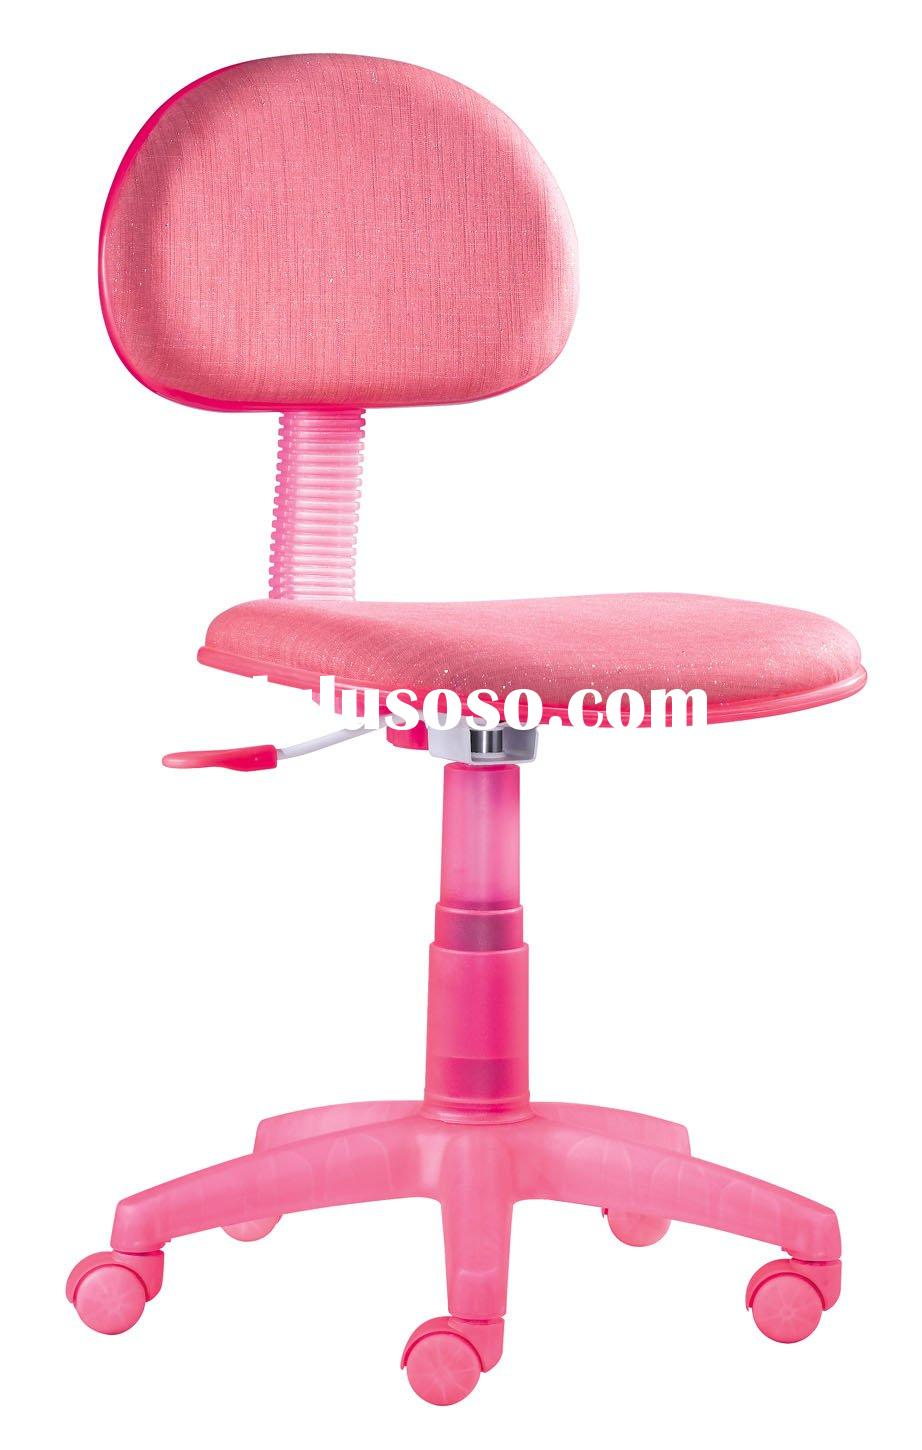 Kids Desk Chairs Pink Decoration Empire